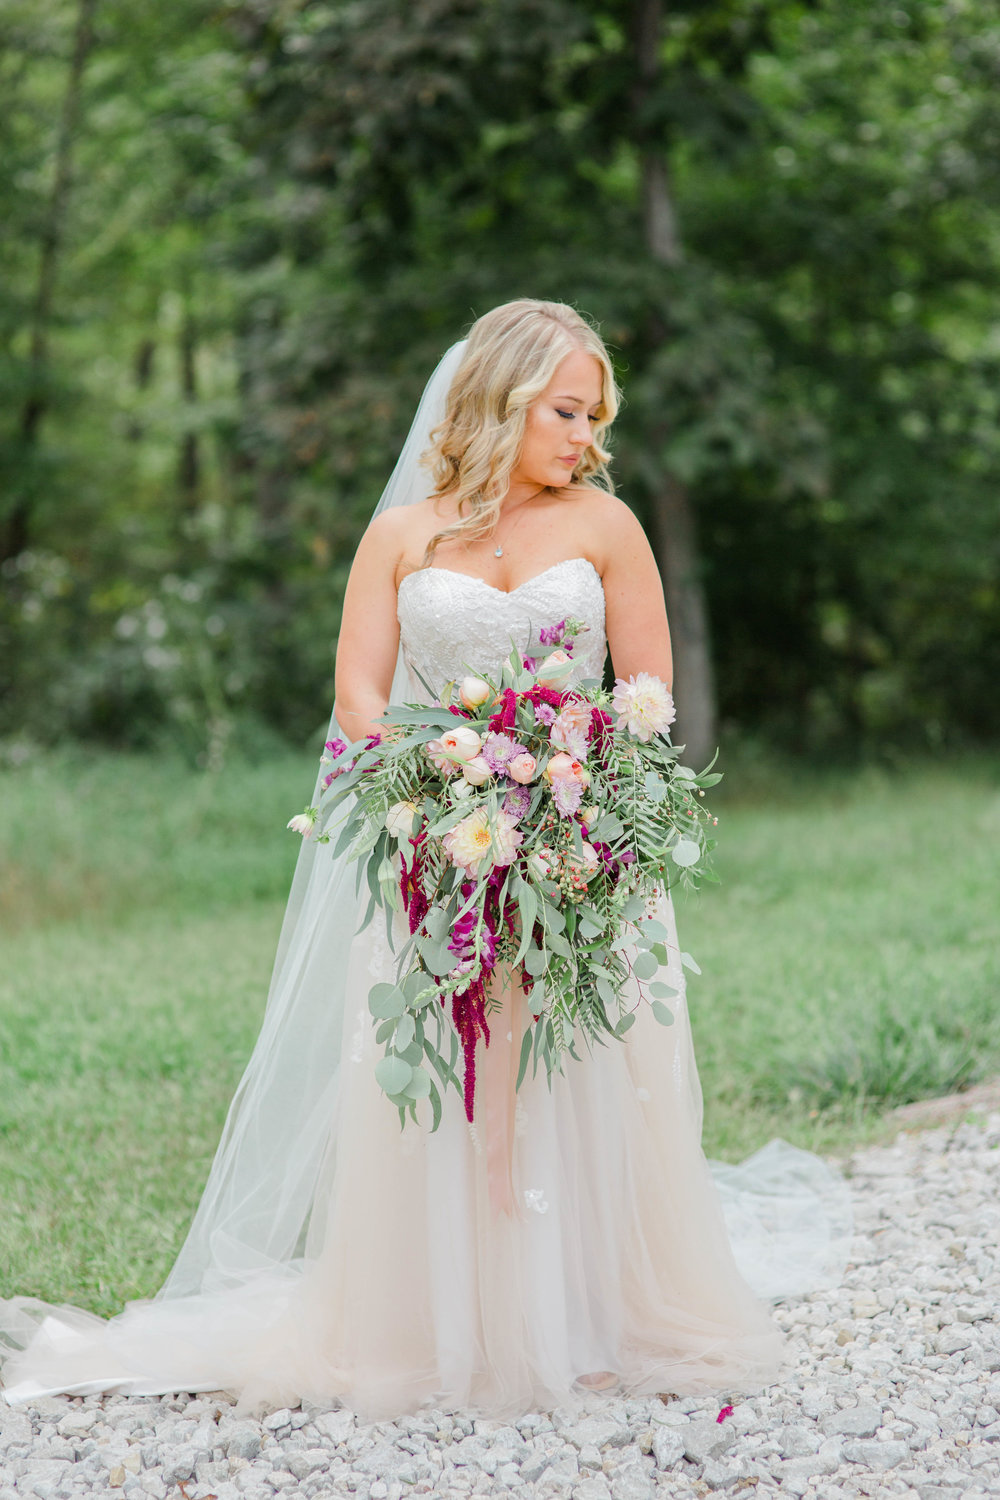 KaraBlakemanPhotography_WV_Weddings_Barn__Beauty_Blogger_16